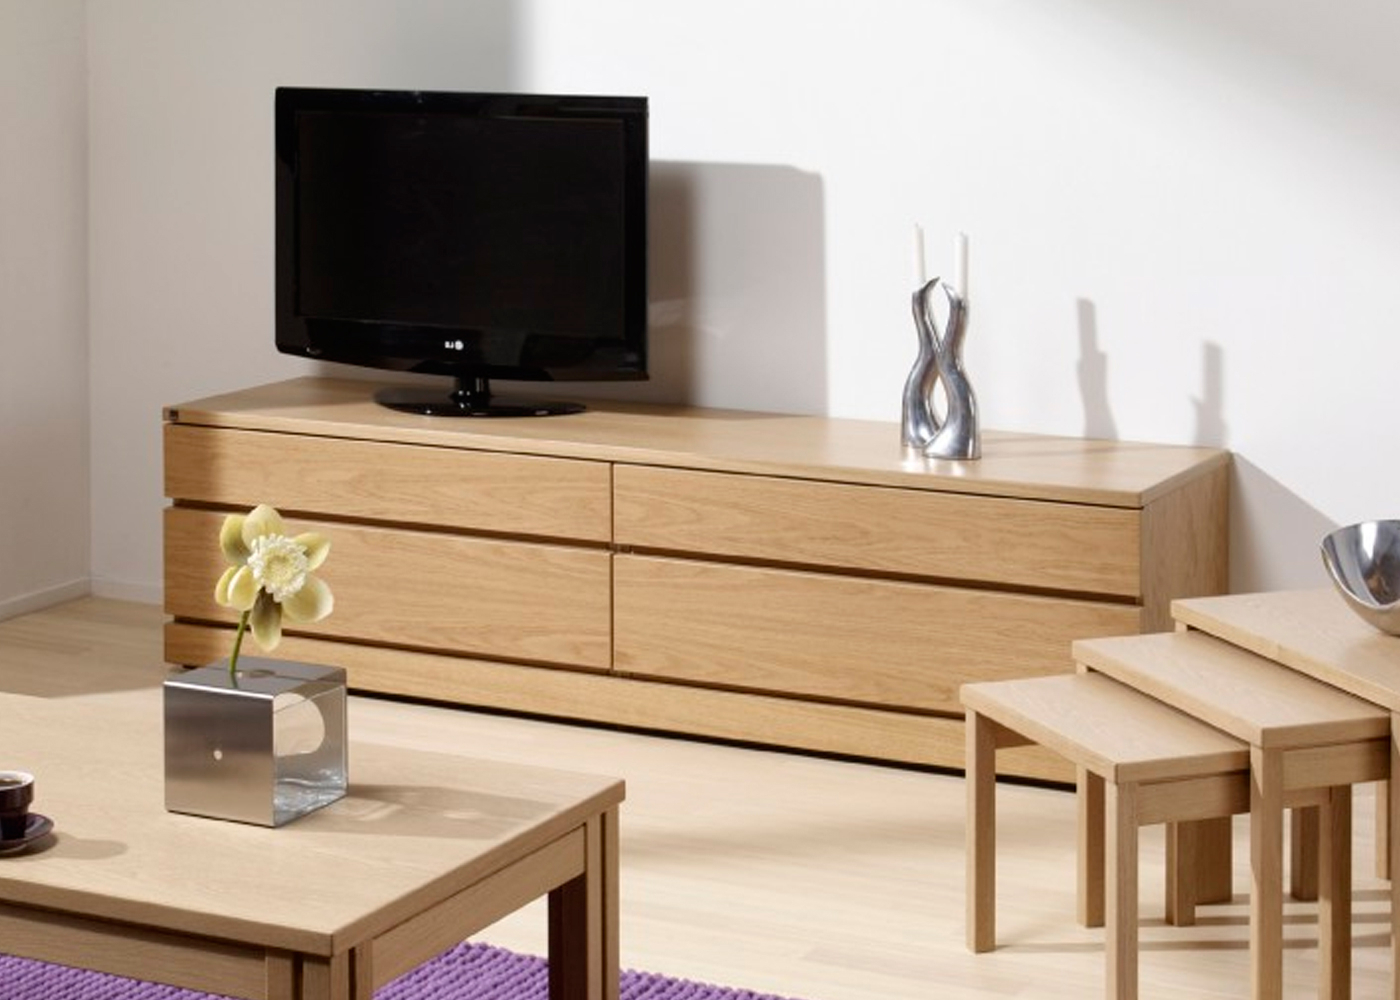 Light Oak Tv Cabinets Throughout Fashionable Skovby Sm87 Tv Cabinet In Light Oak Finish 1 – Midfurn Furniture (View 8 of 20)